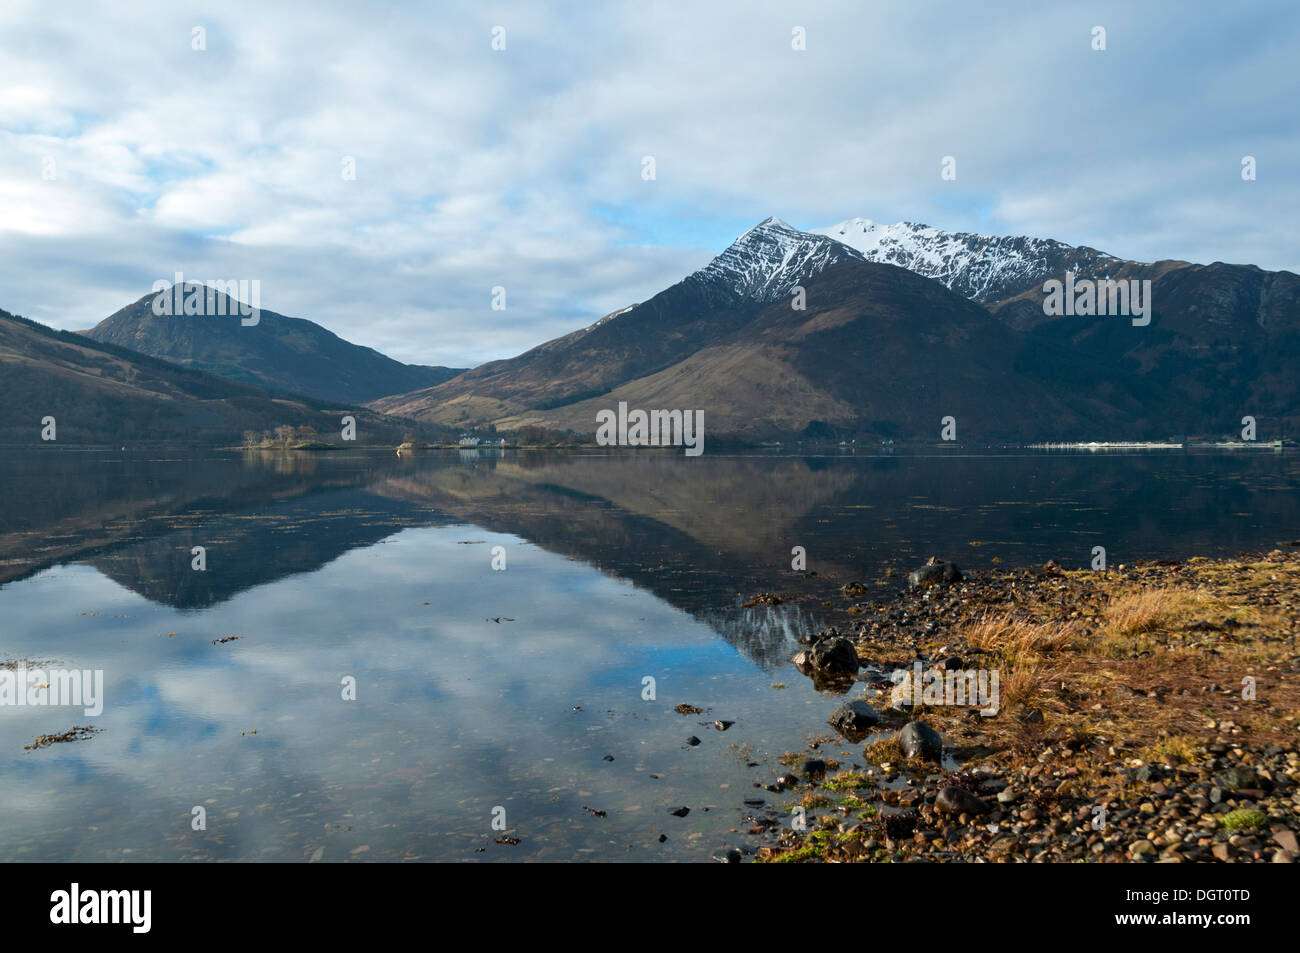 Sgorr a' Choise and the  Beinn a' Bheithir range over Loch Leven, from near North Ballachulish, Highland region, Scotland, UK - Stock Image